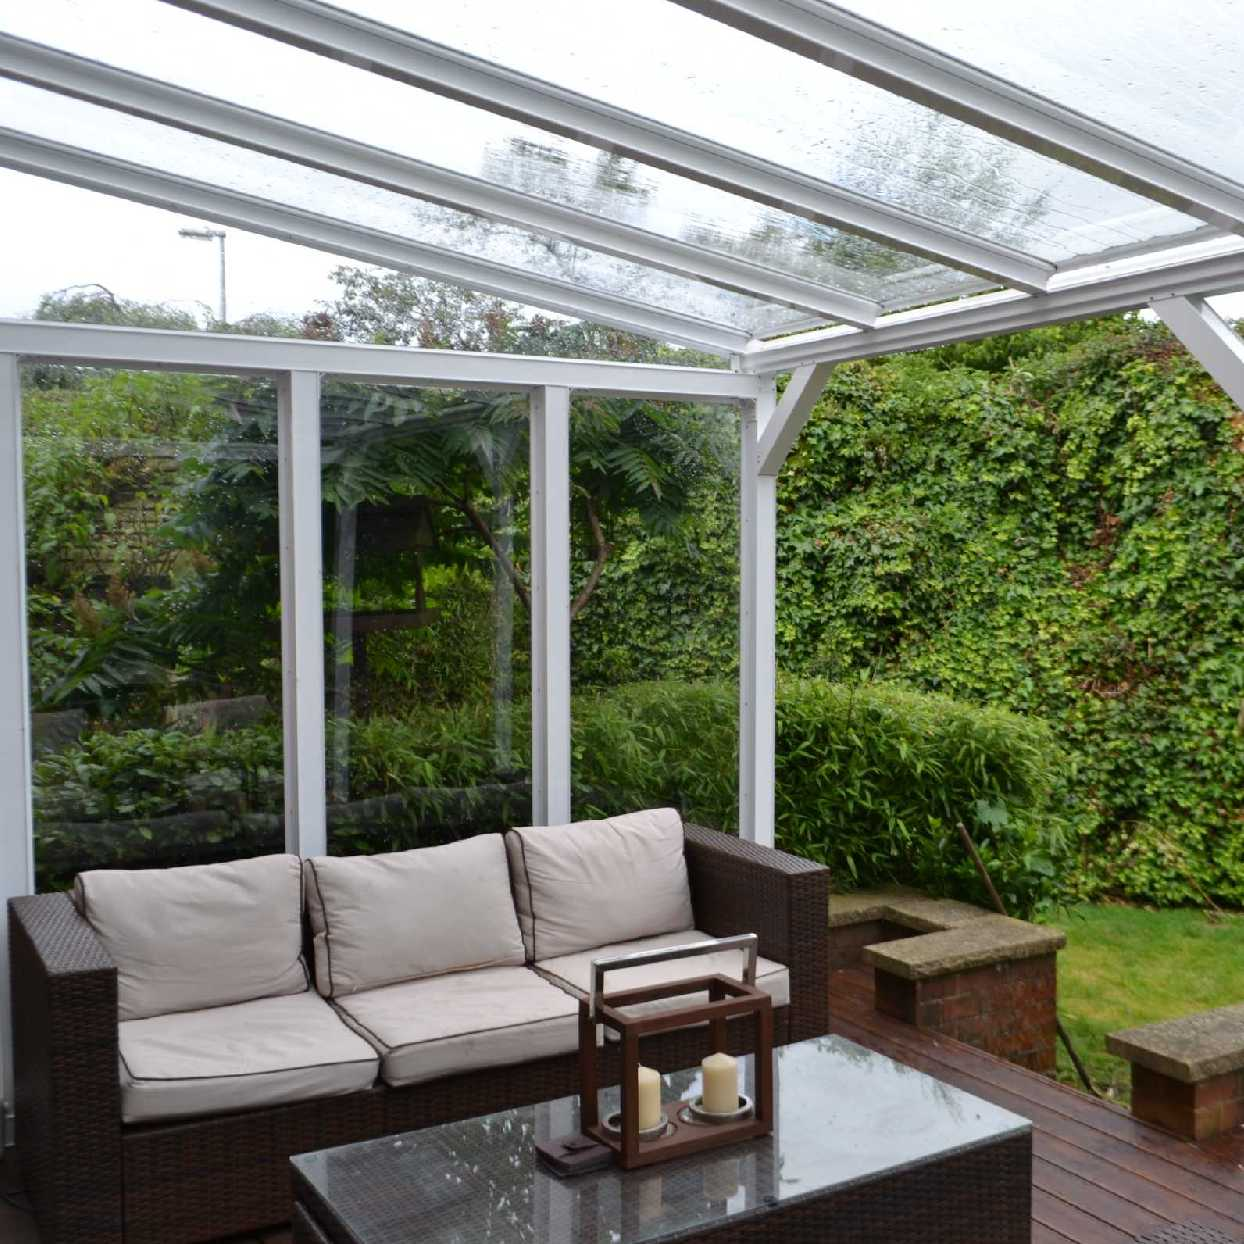 Great selection of Omega Smart White Lean-To Canopy with 16mm Polycarbonate Glazing - 11.6m (W) x 3.0m (P), (5) Supporting Posts